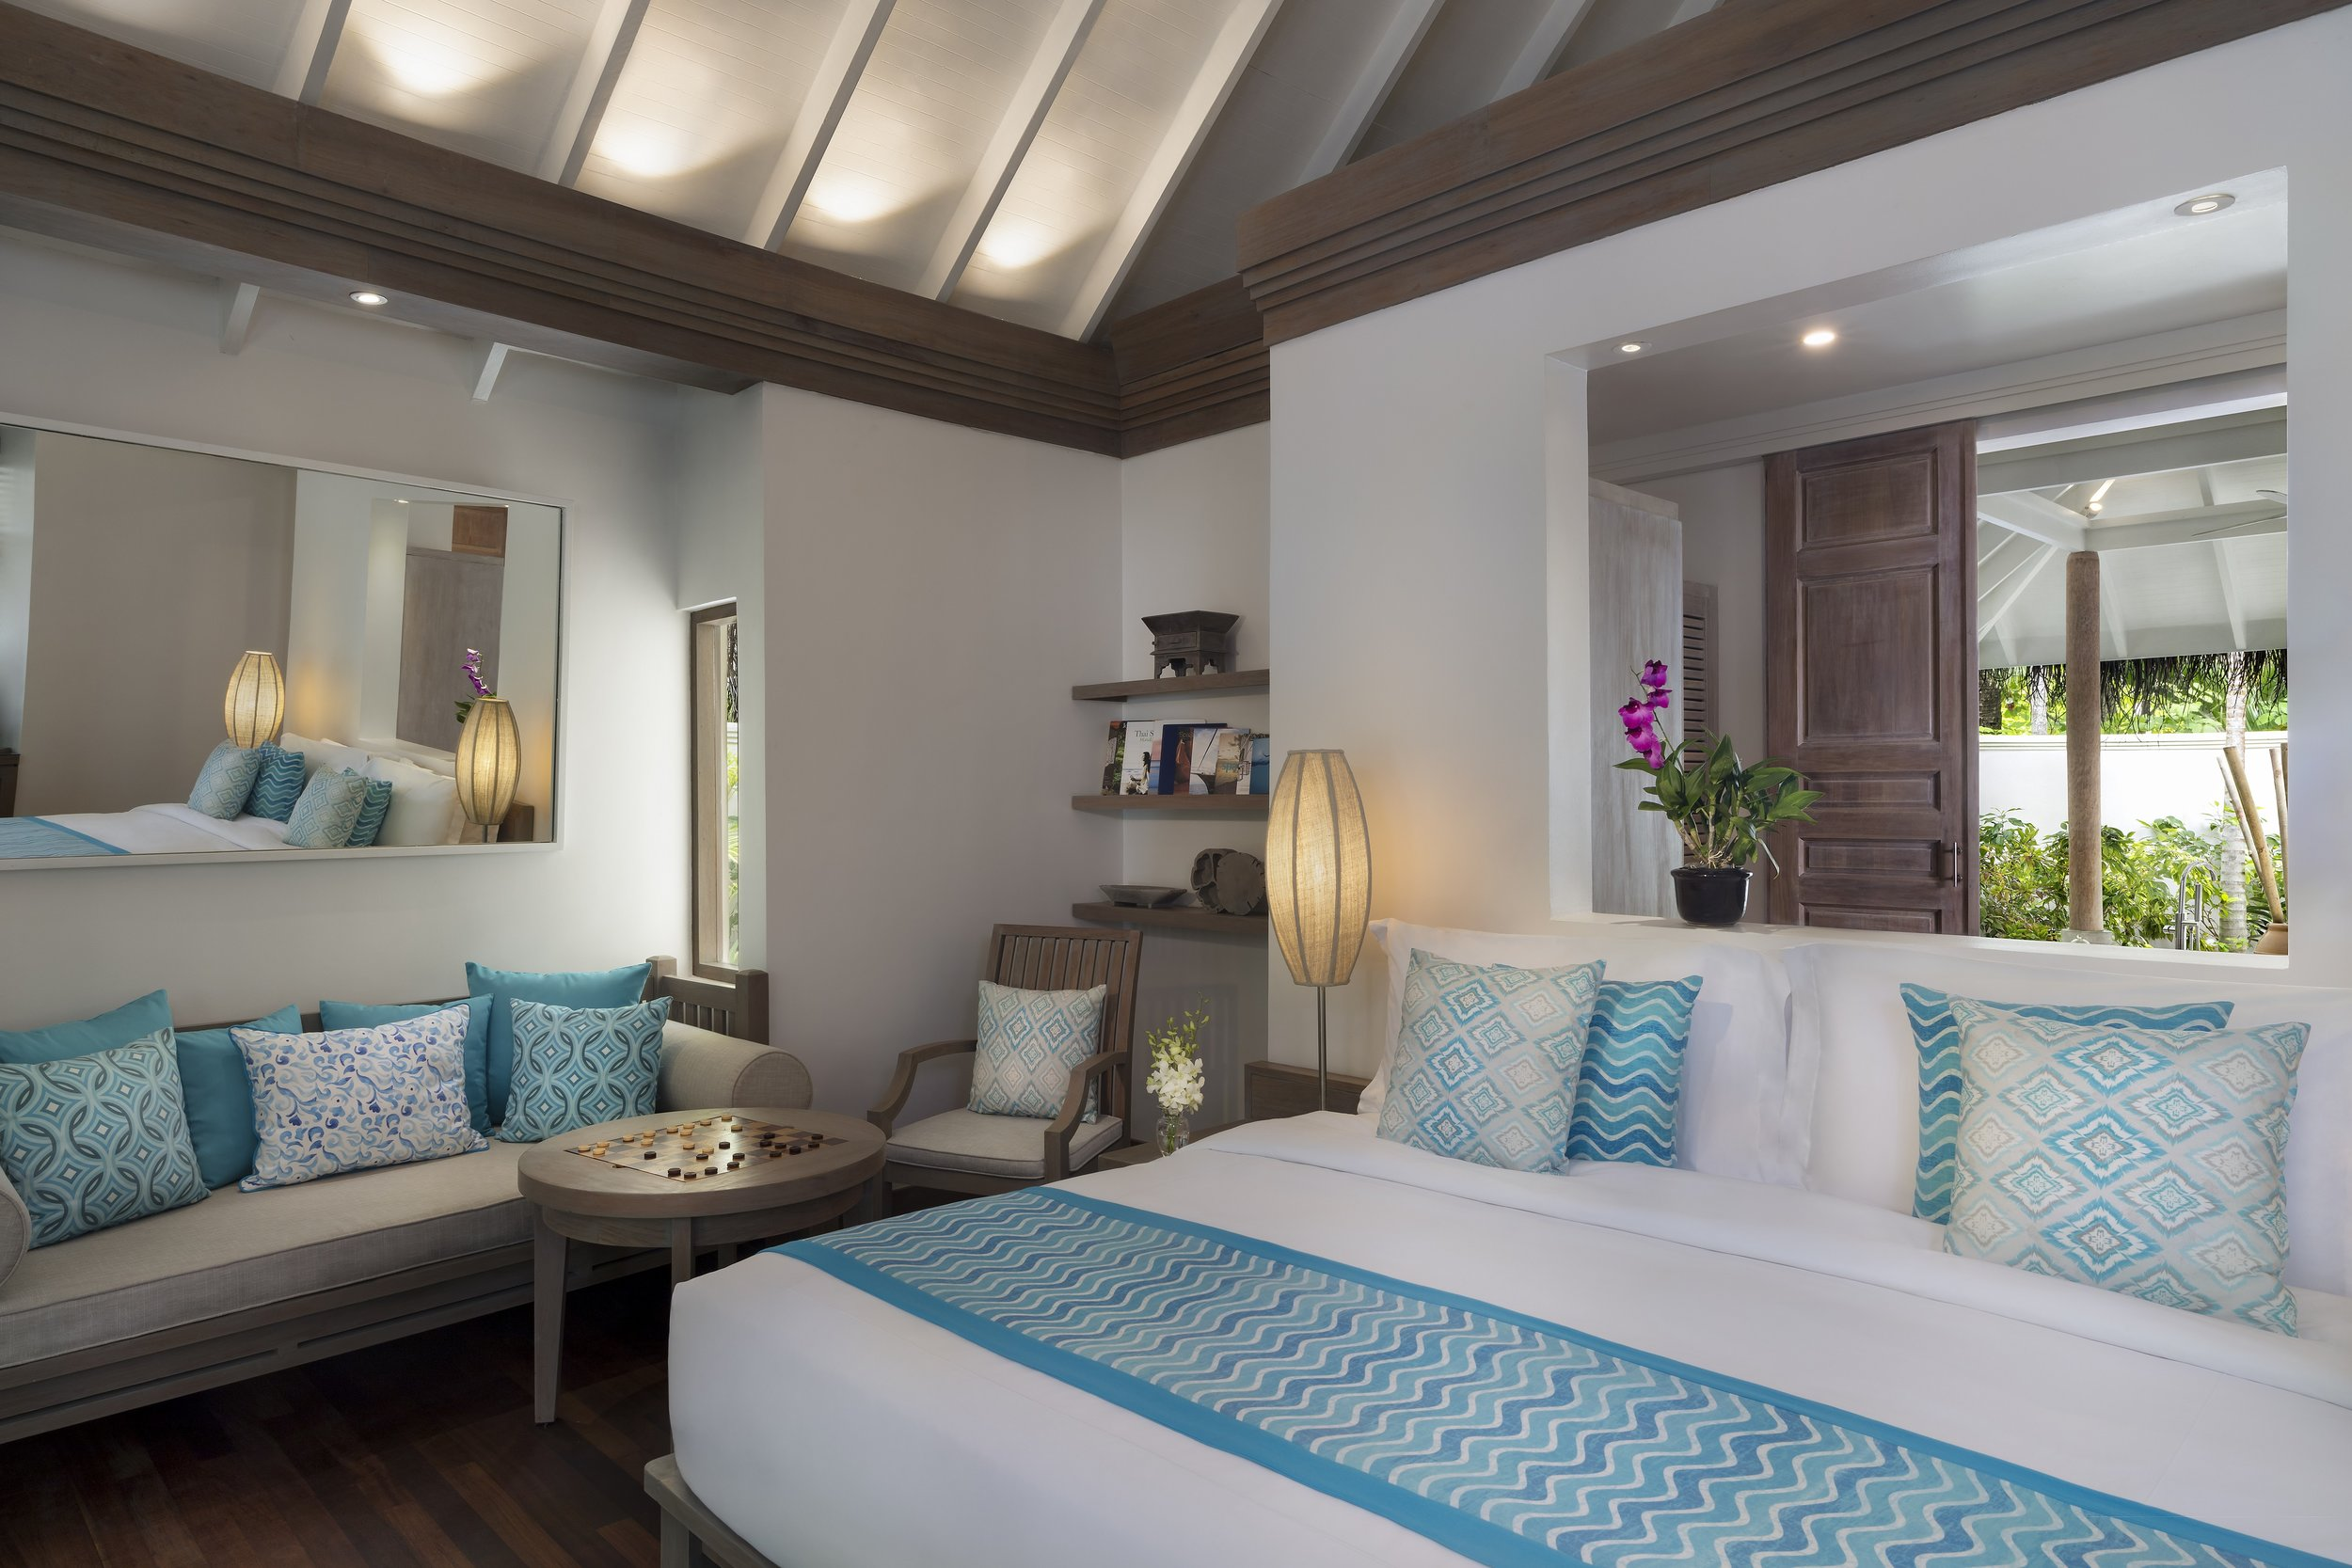 Anantara_Dhigu_Sunset_Beach_Villa_Bedroom_Angle.jpg